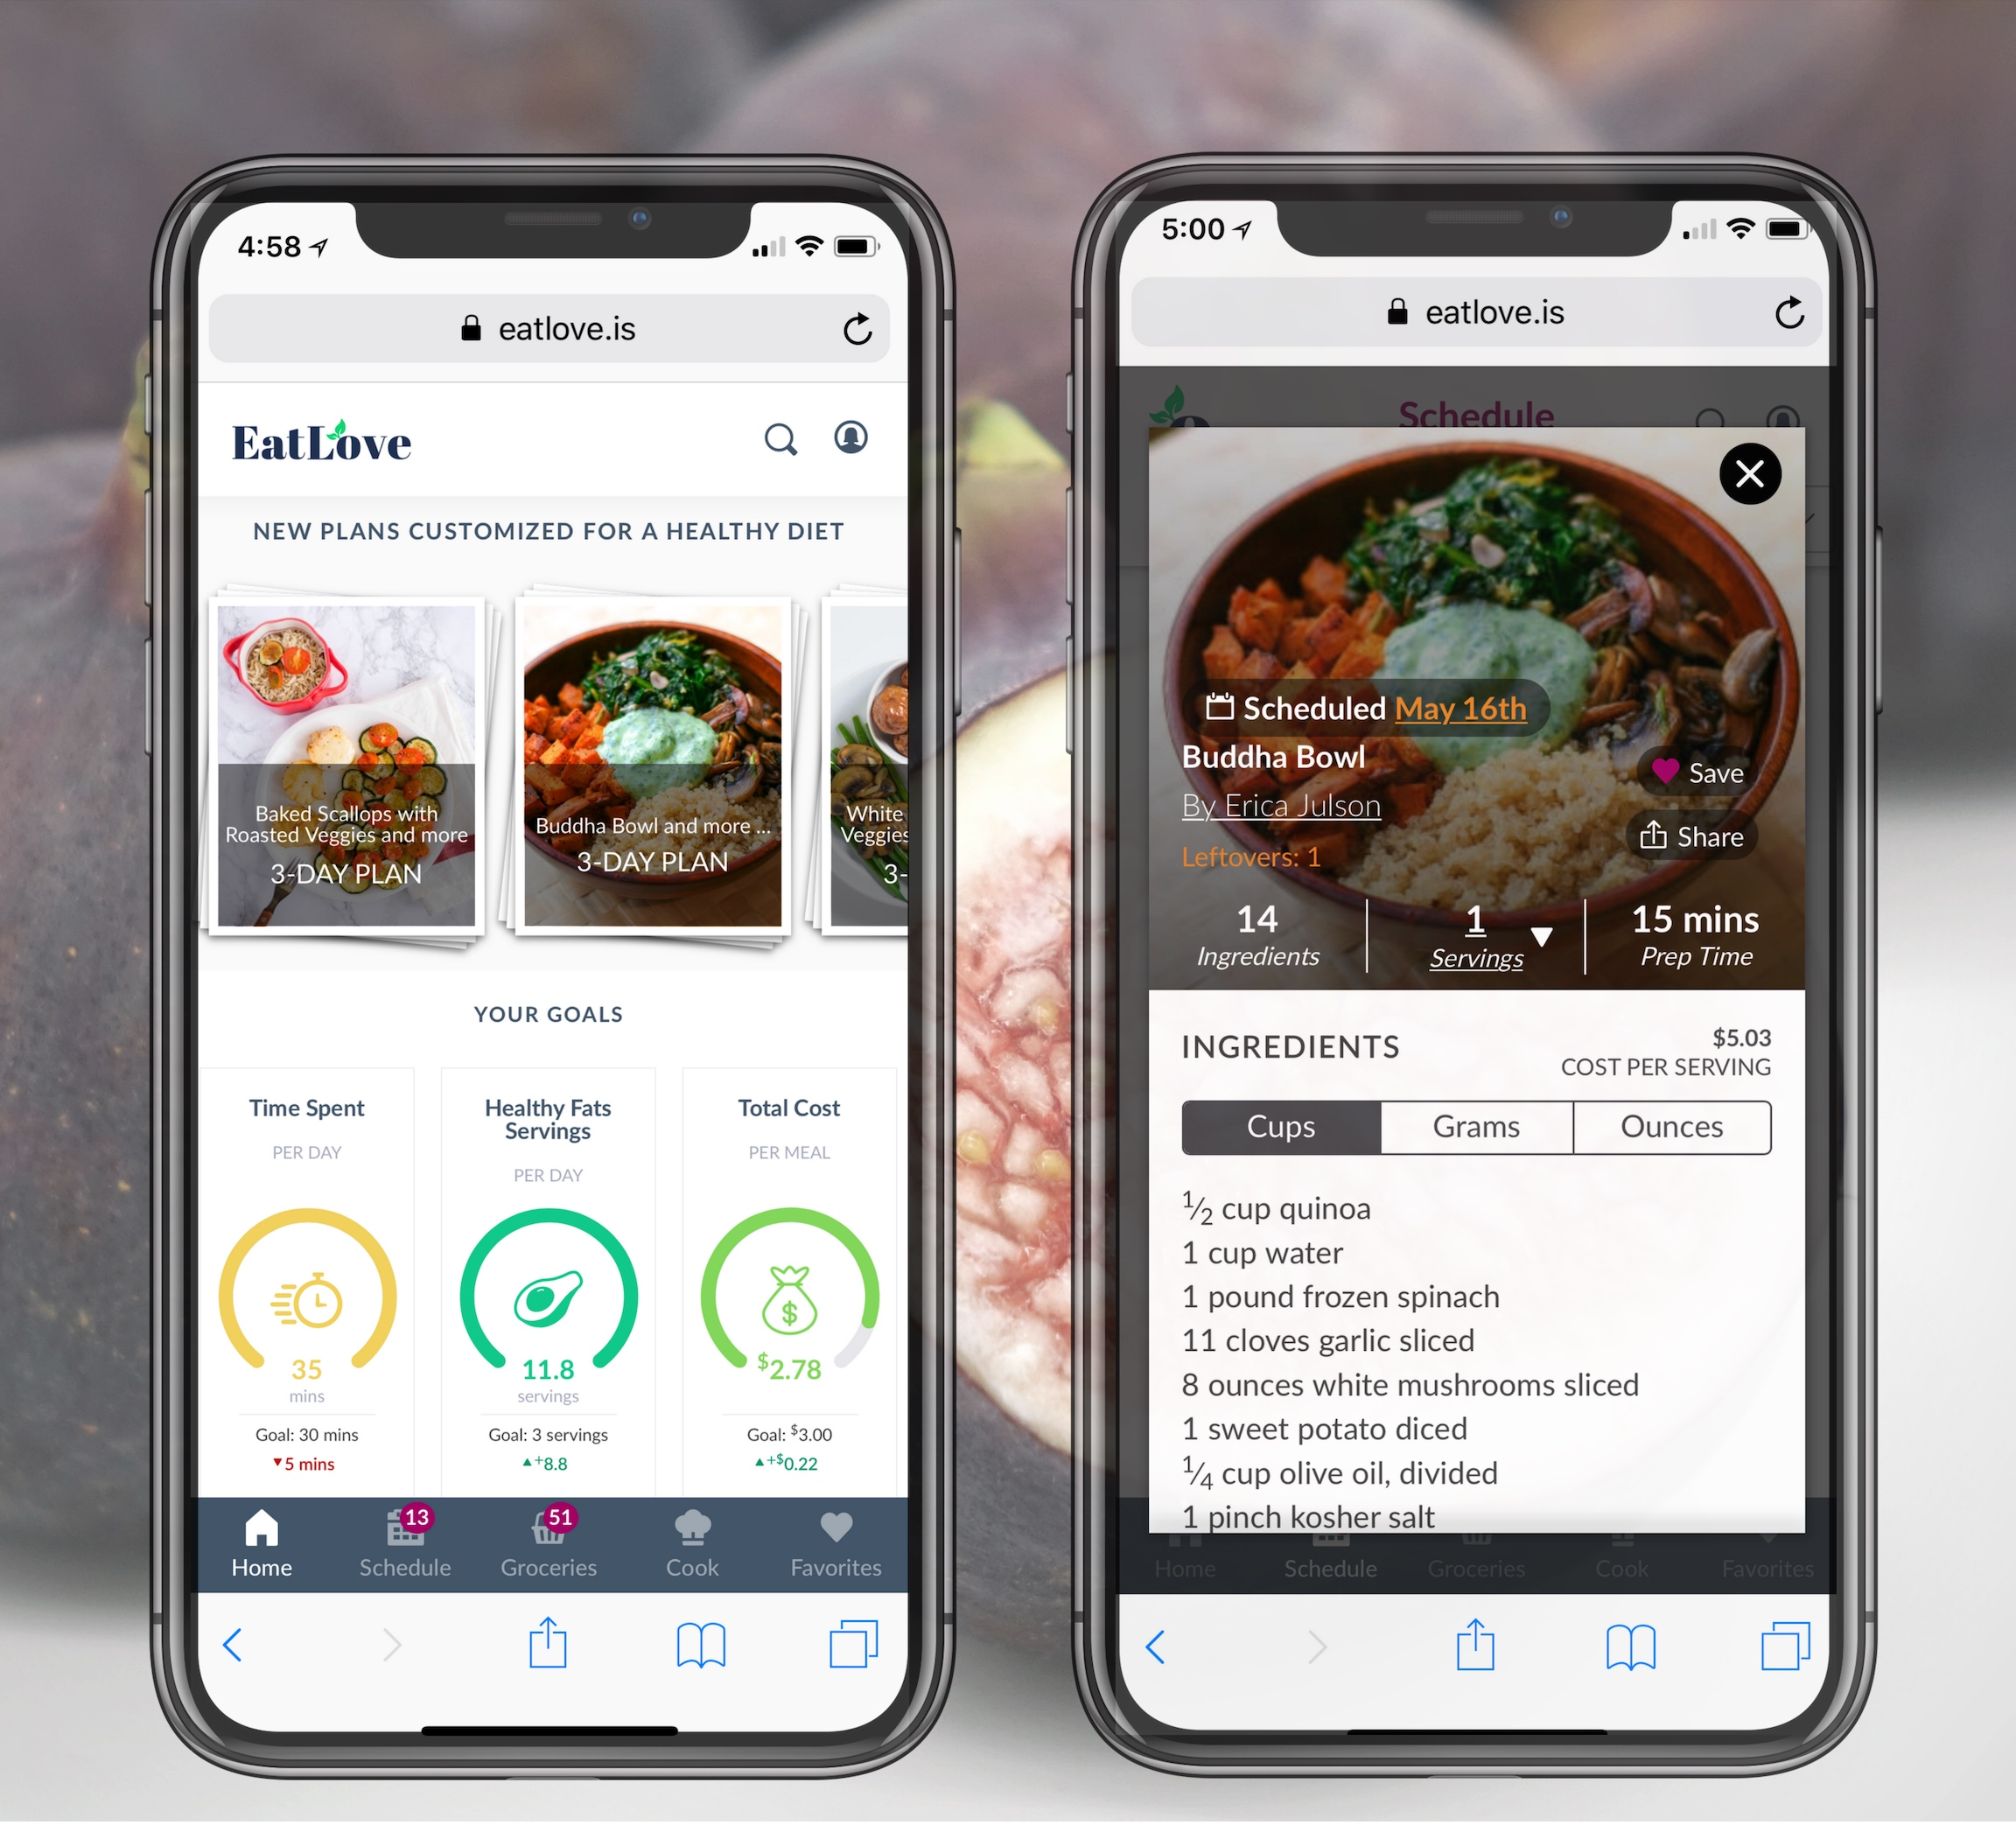 personalized meal plans - Personalized, customizable, weekly meal plans for 1-7 days. Meal plans tailored by Lara with the ability to swap out thousands of recipes - this meal planning software takes into consideration your macronutrient needs, cooking skill, family members, and food preferences. Get instant grocery lists for your weekly meal plans and easy to follow recipe cards.